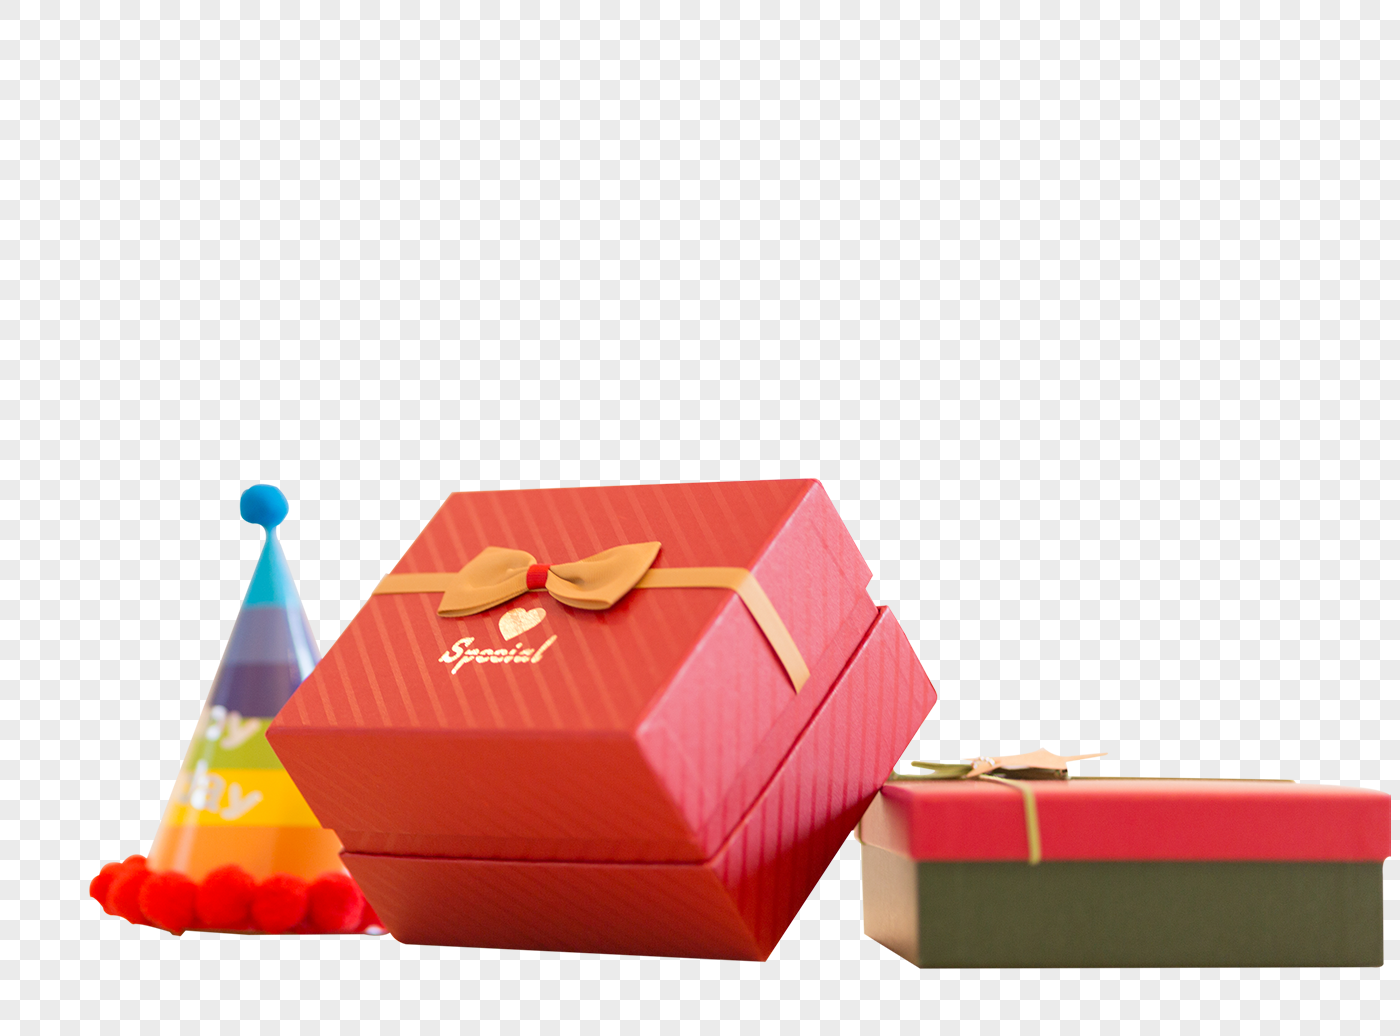 birthday party gifts png image picture free download